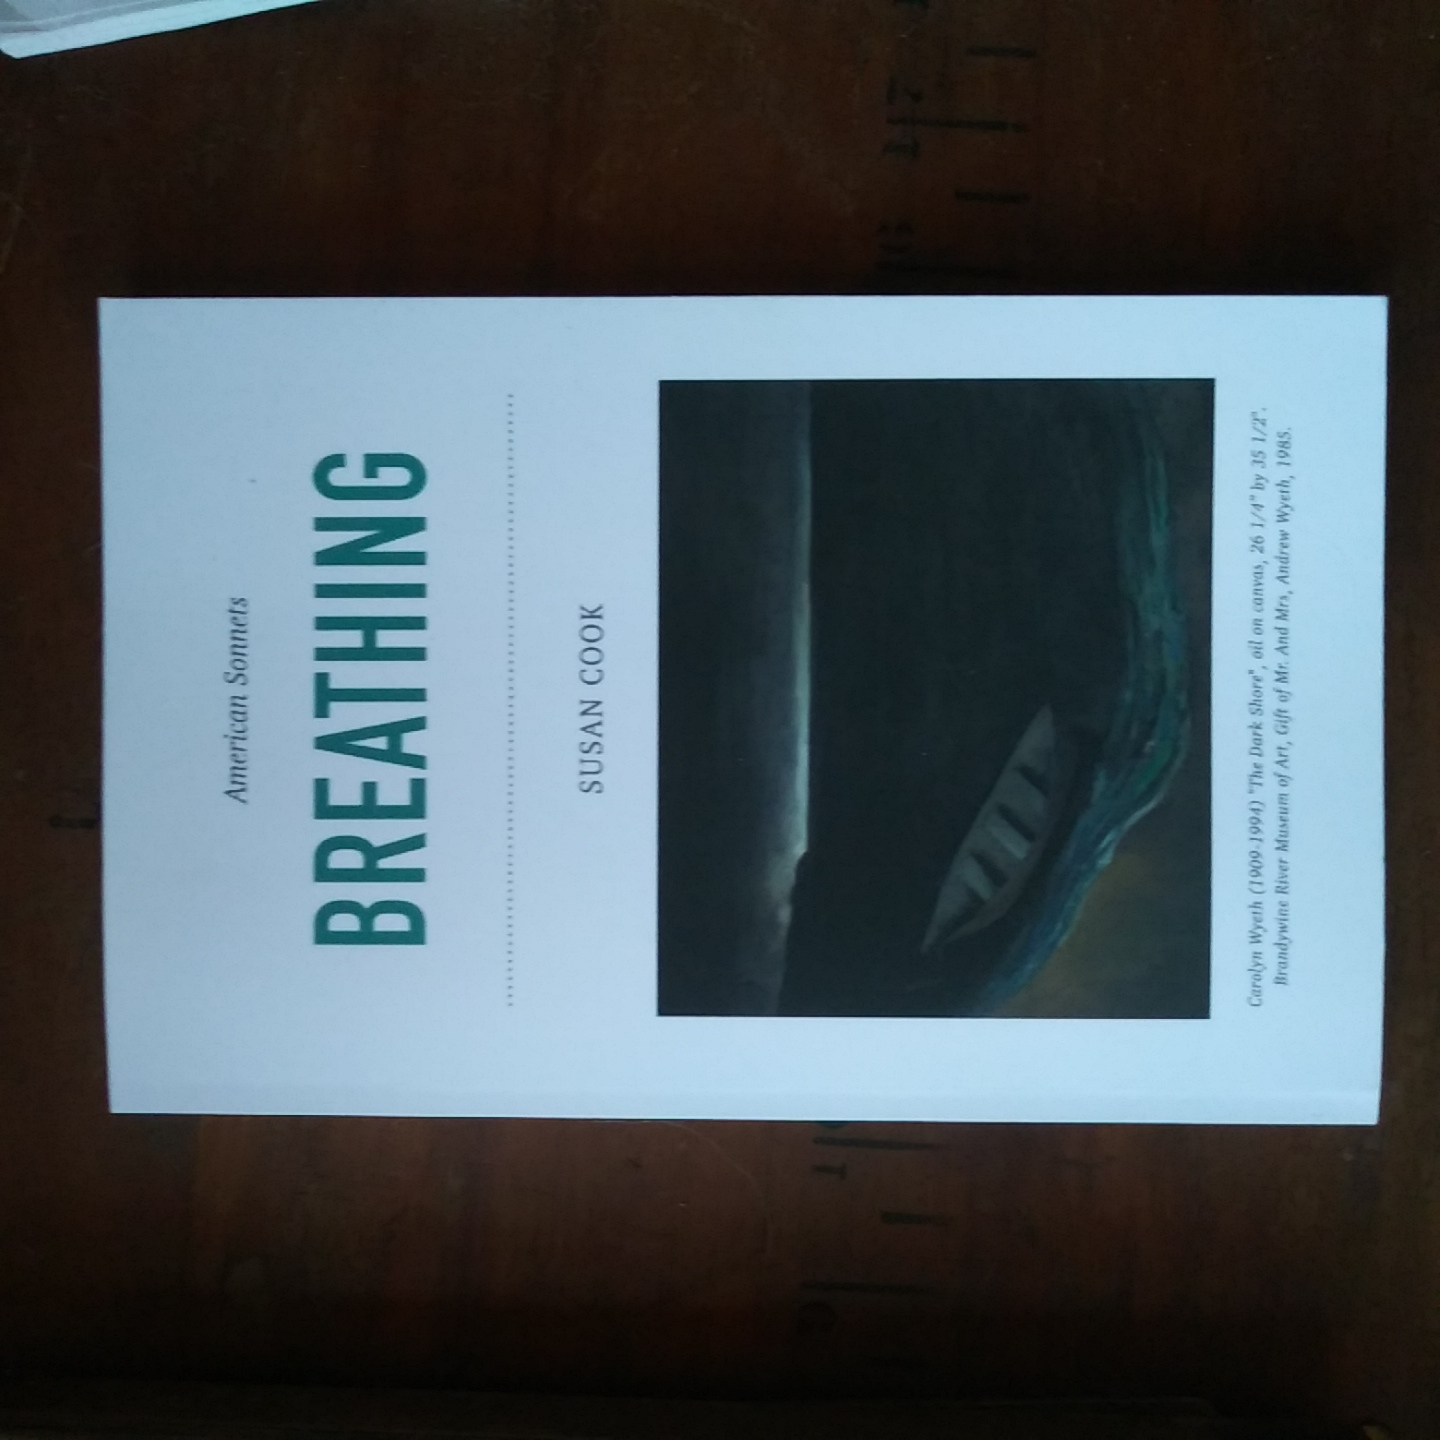 Caption: More poems in the tradition: Breathng: American Sonnets, Credit: Susan Cook